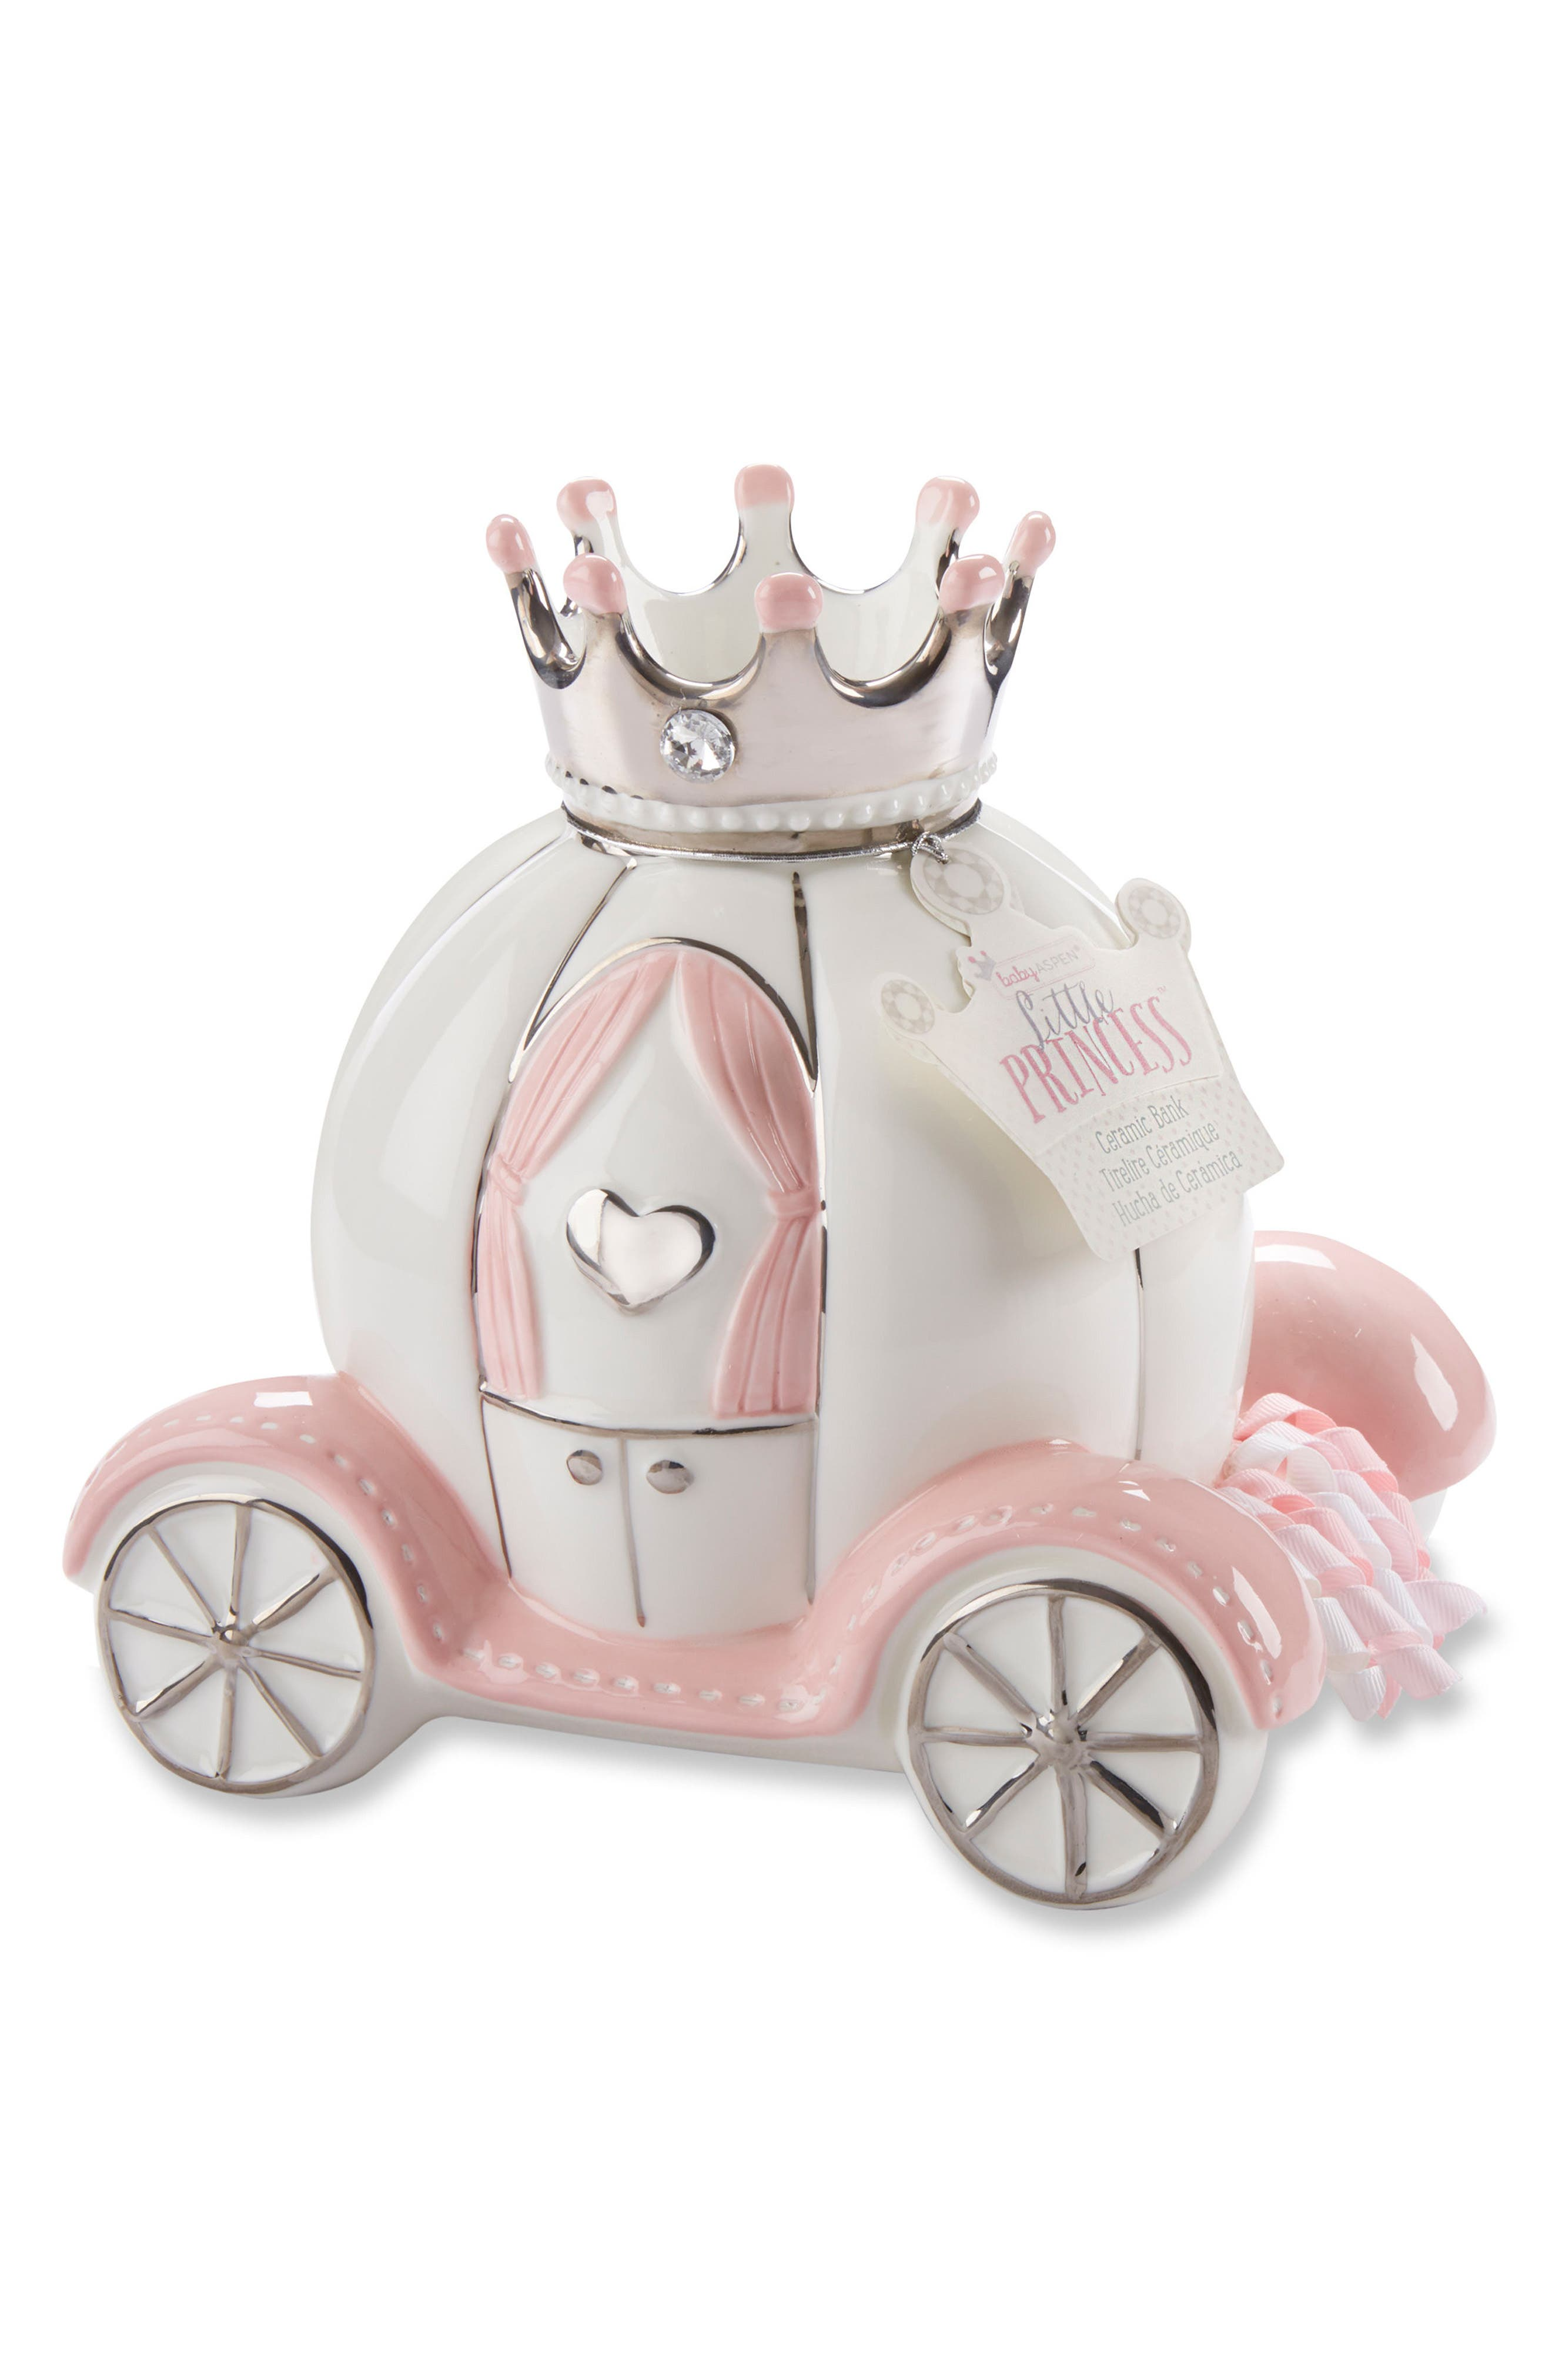 Little Princess Ceramic Carriage Bank,                             Main thumbnail 1, color,                             Carriage